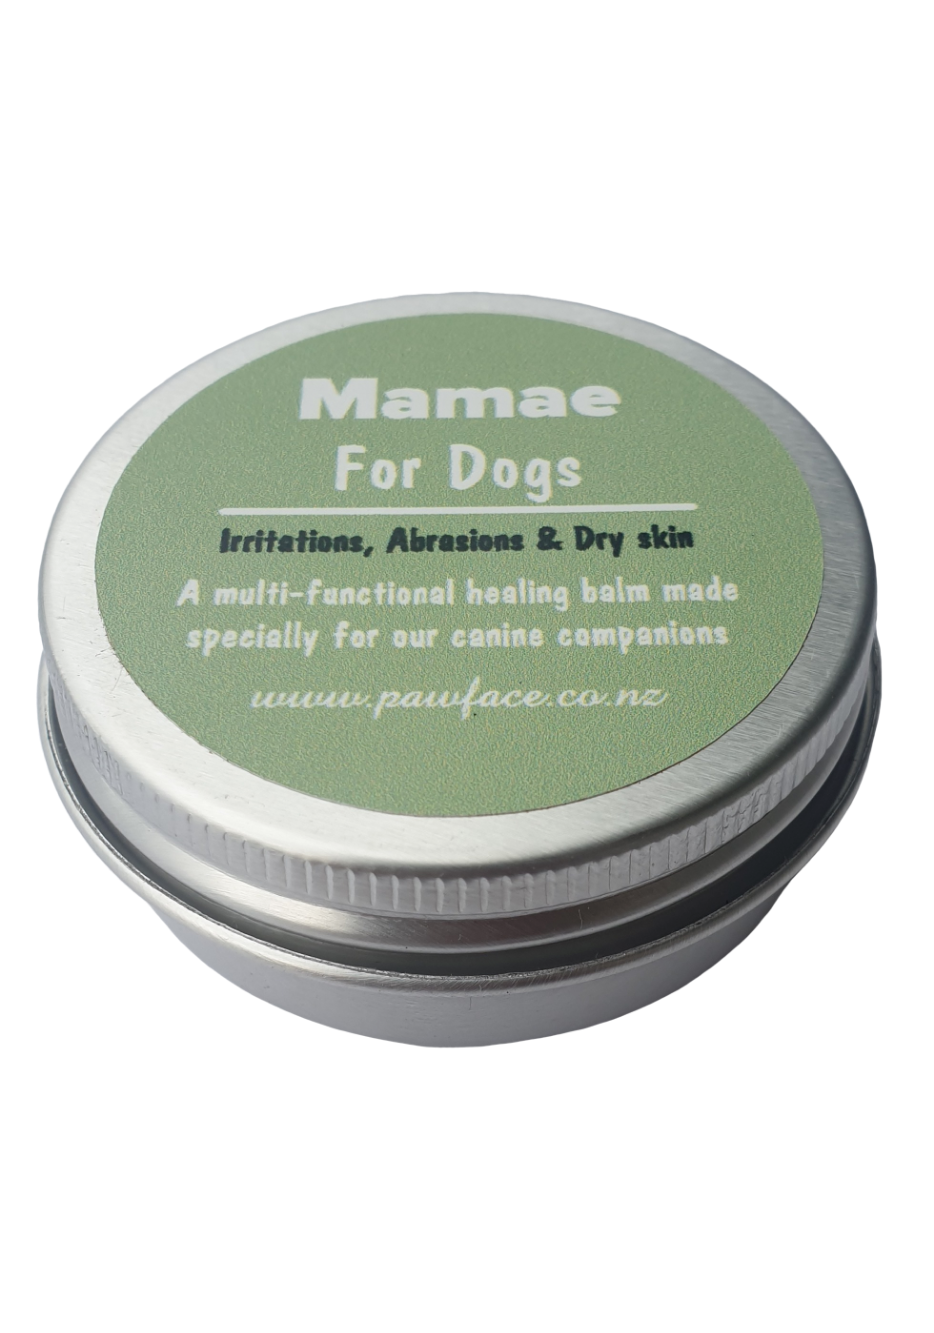 Mamae dog balm to help heal scratches irritations and minor wounds